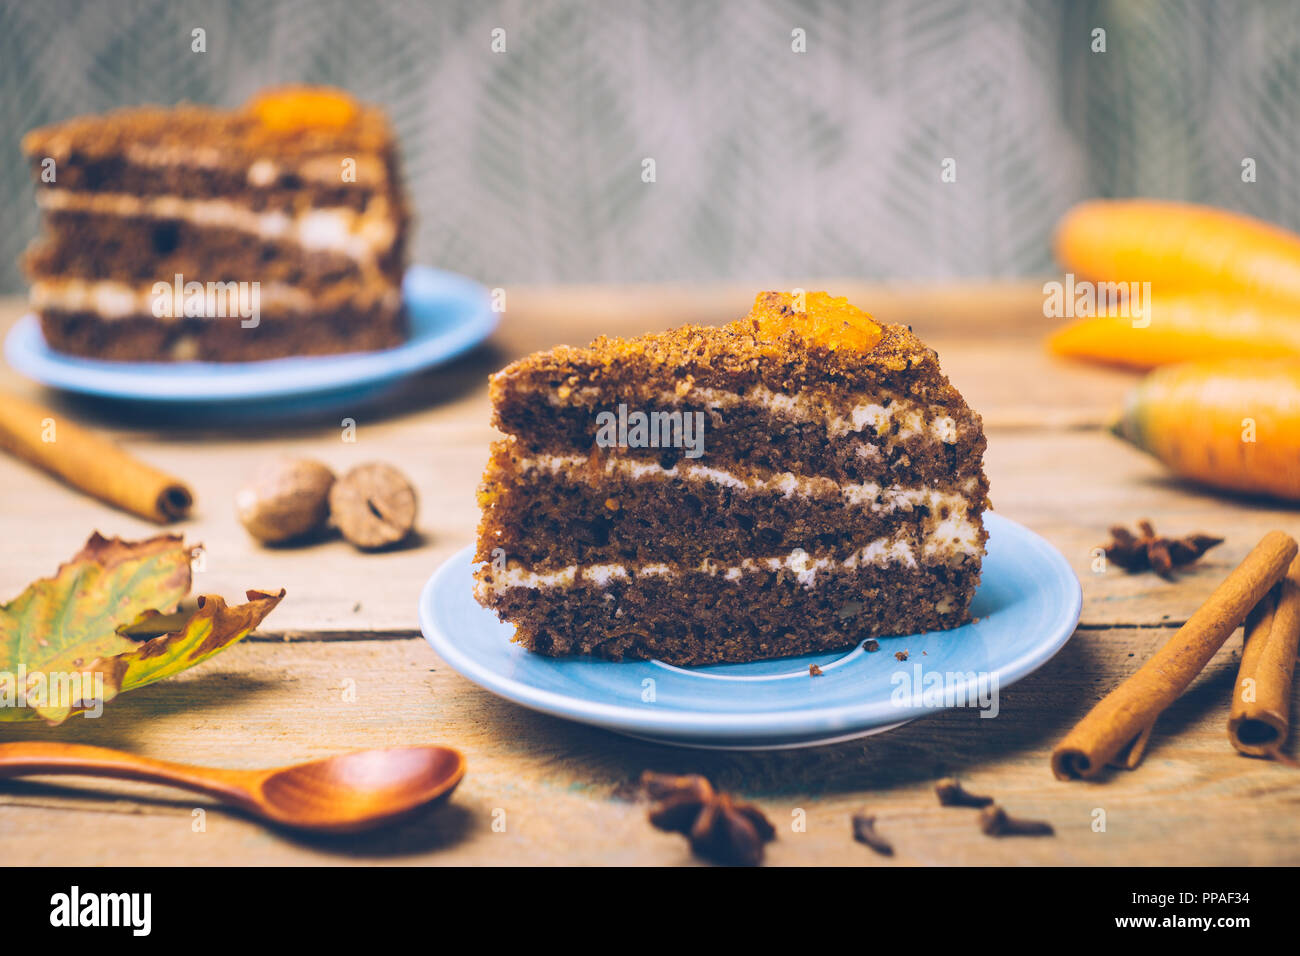 Carrot cake (homemade desserts) whith cinnamon sticks and decorated with spices on wooden background. - Stock Image